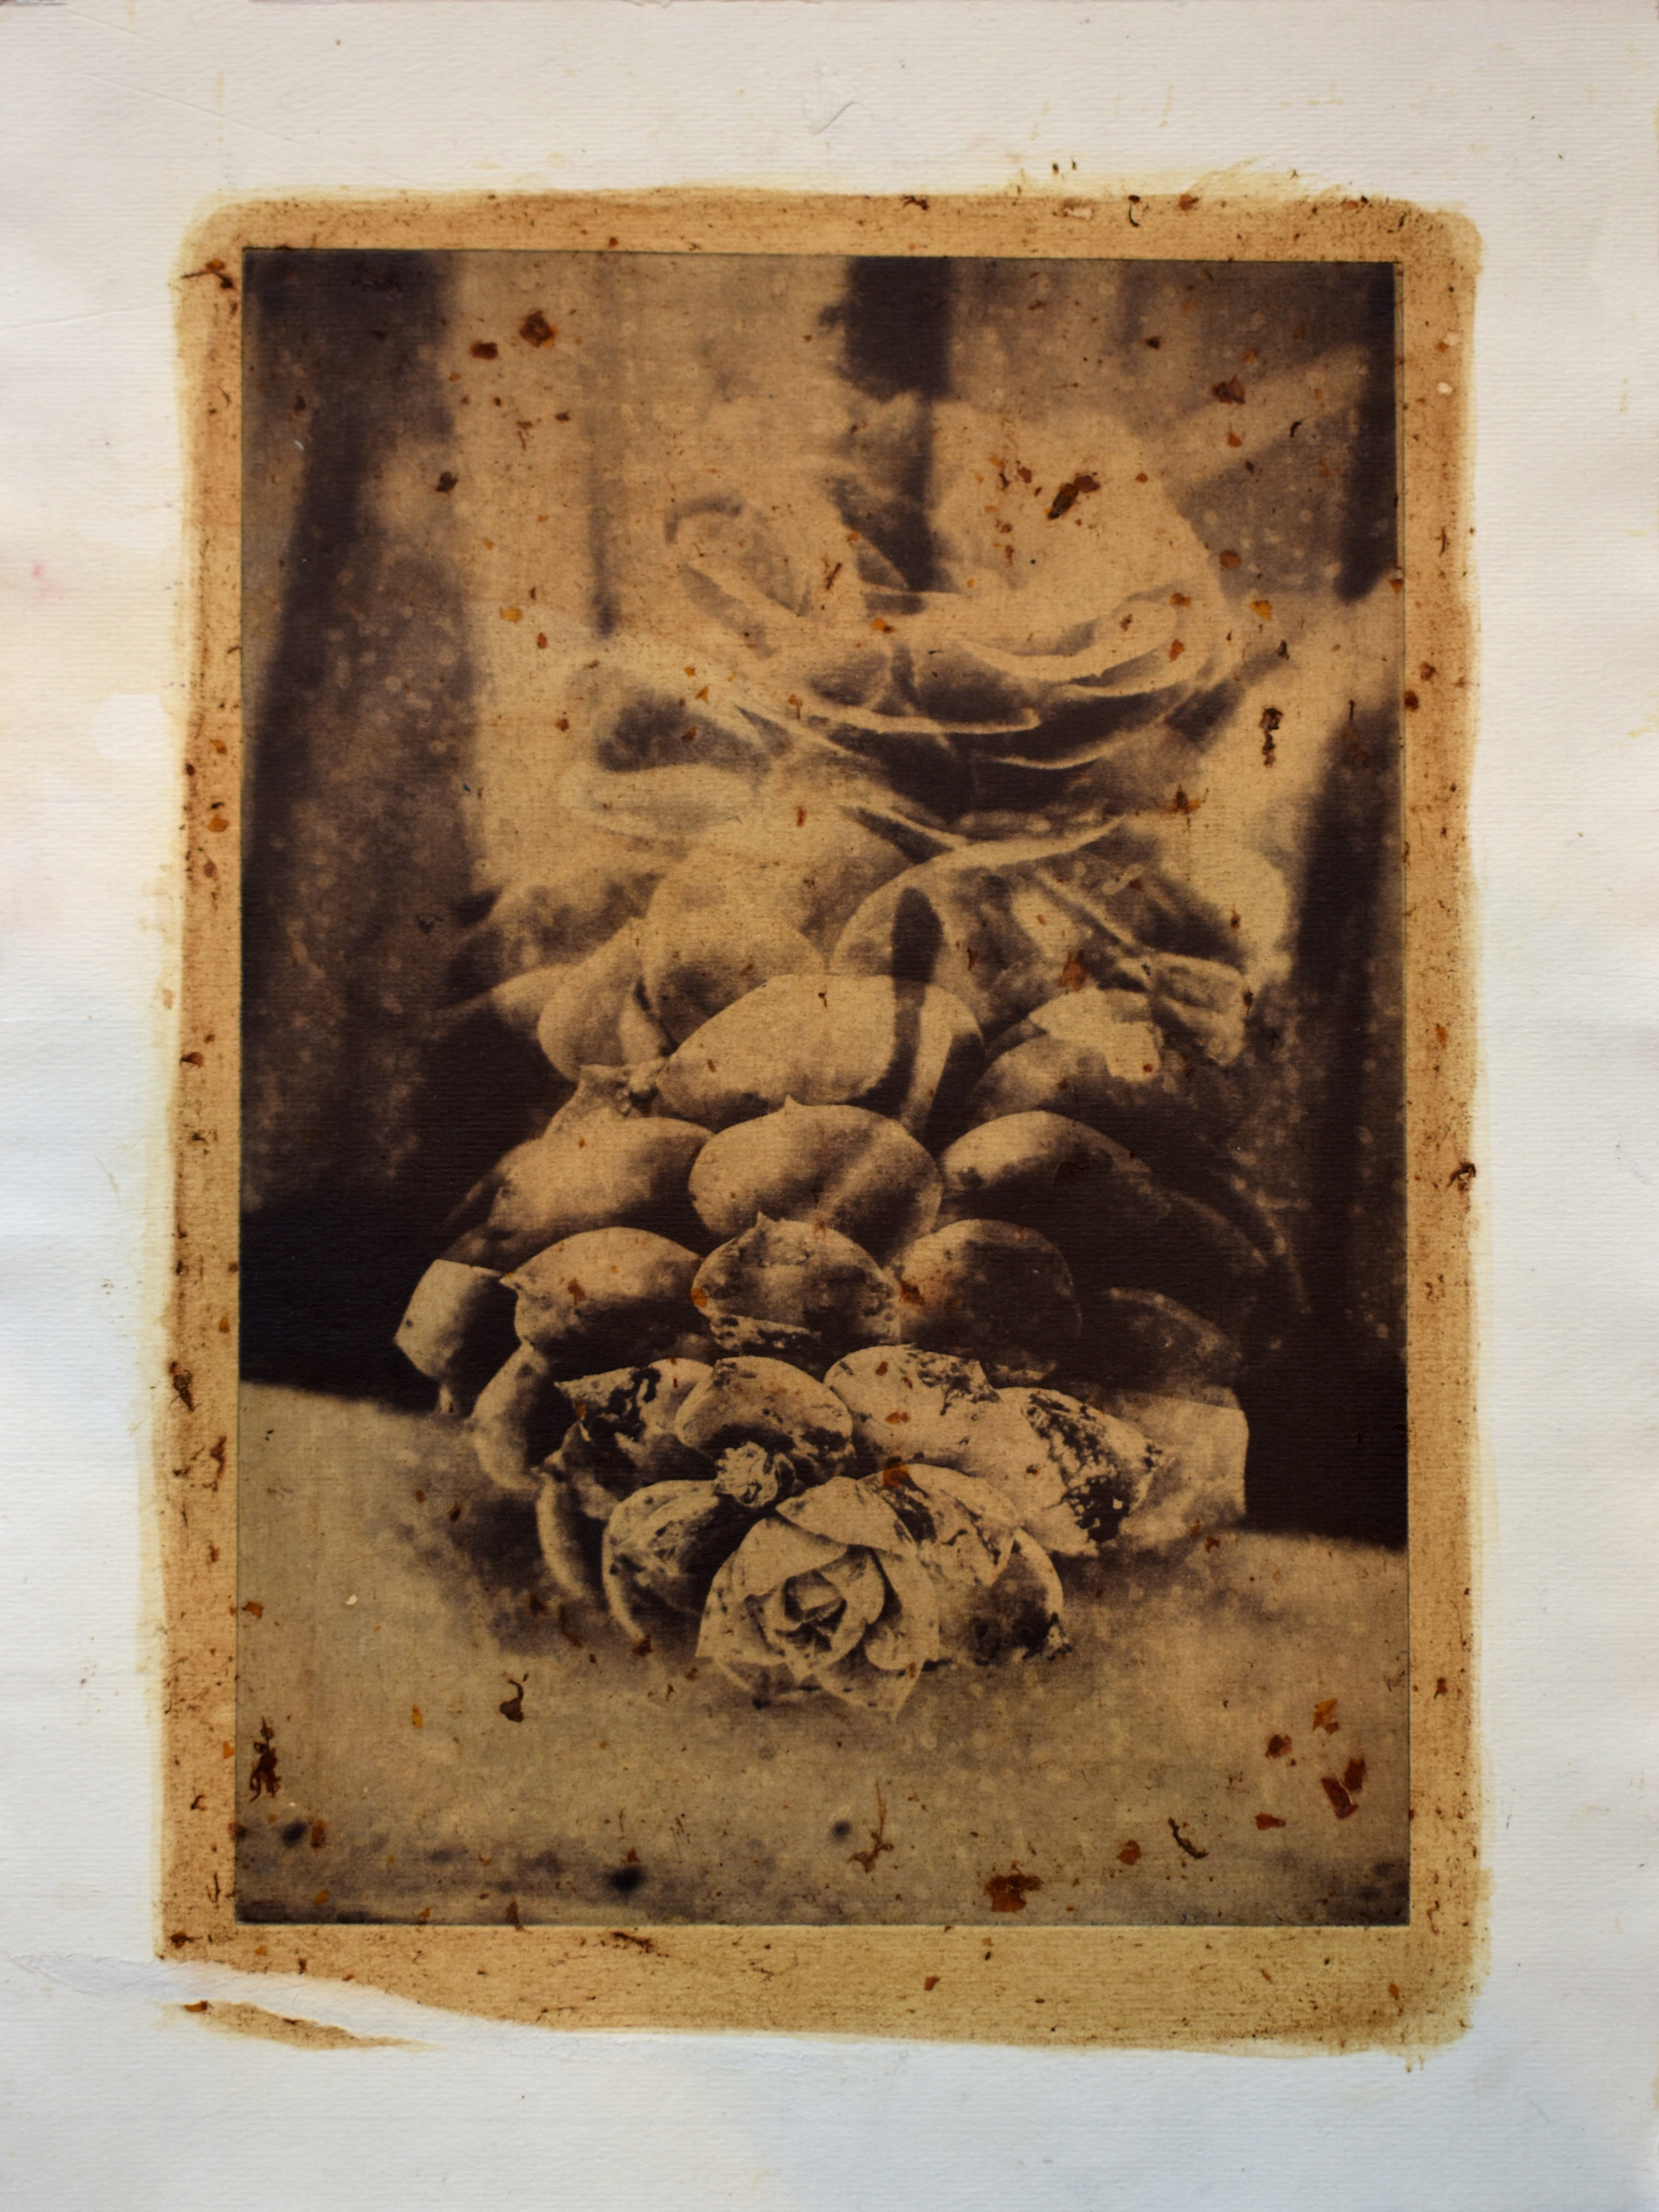 Photogravure, succulent bloom and calcite. Printed on paper hand-dyed with collected, crushed rose petals. 25 x 33cm. 2019